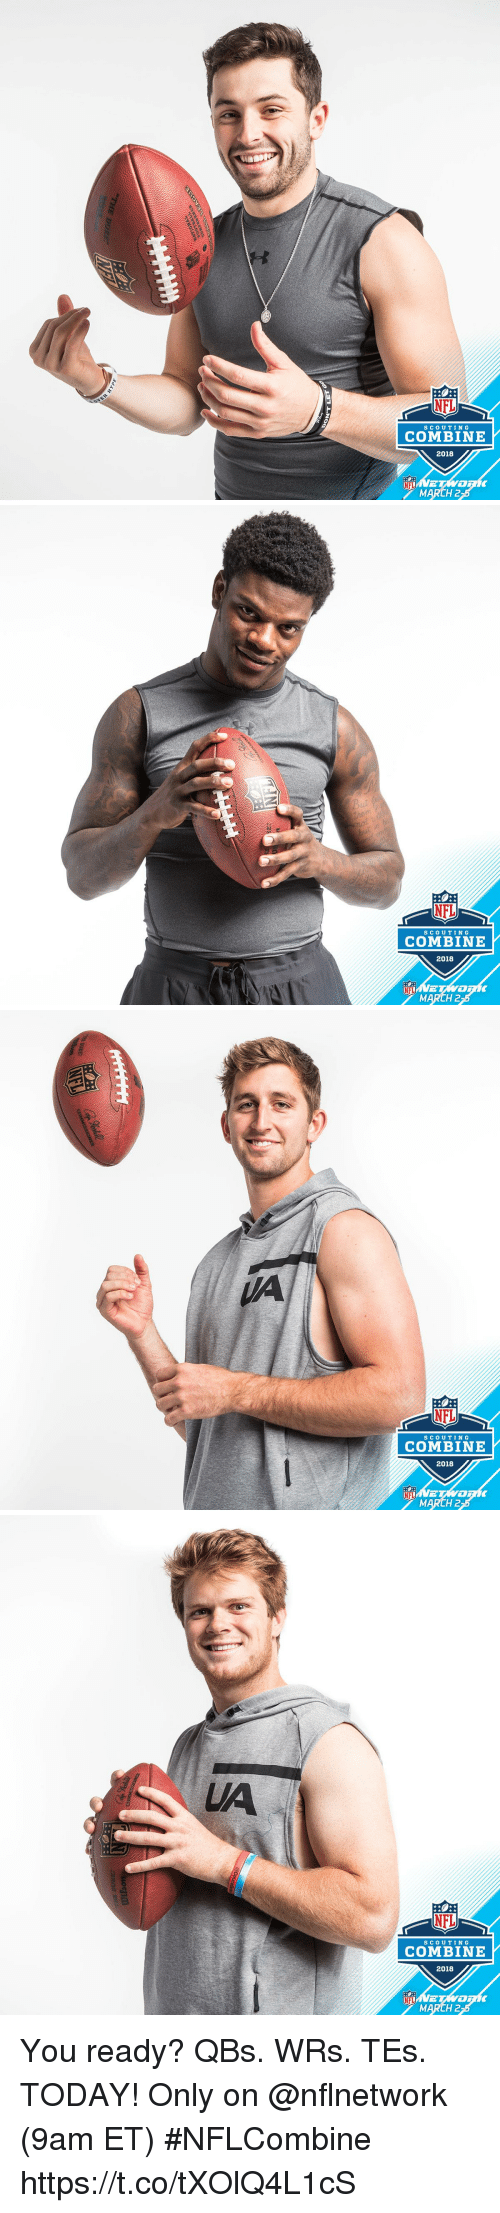 scouting: NFL  SCOUTING  COMBINE  2018  NFL  MARCH 2   NFL  SCOUTING  COMBINE  2018  NFL  MARCH 2   NFL  SCOUTING  COMBINE  2018  NFL  MARCH 2   LA  NFL  SCOUTING  COMBINE  2018  NFL  MARCH 2 You ready?  QBs. WRs. TEs. TODAY! Only on @nflnetwork (9am ET) #NFLCombine https://t.co/tXOlQ4L1cS